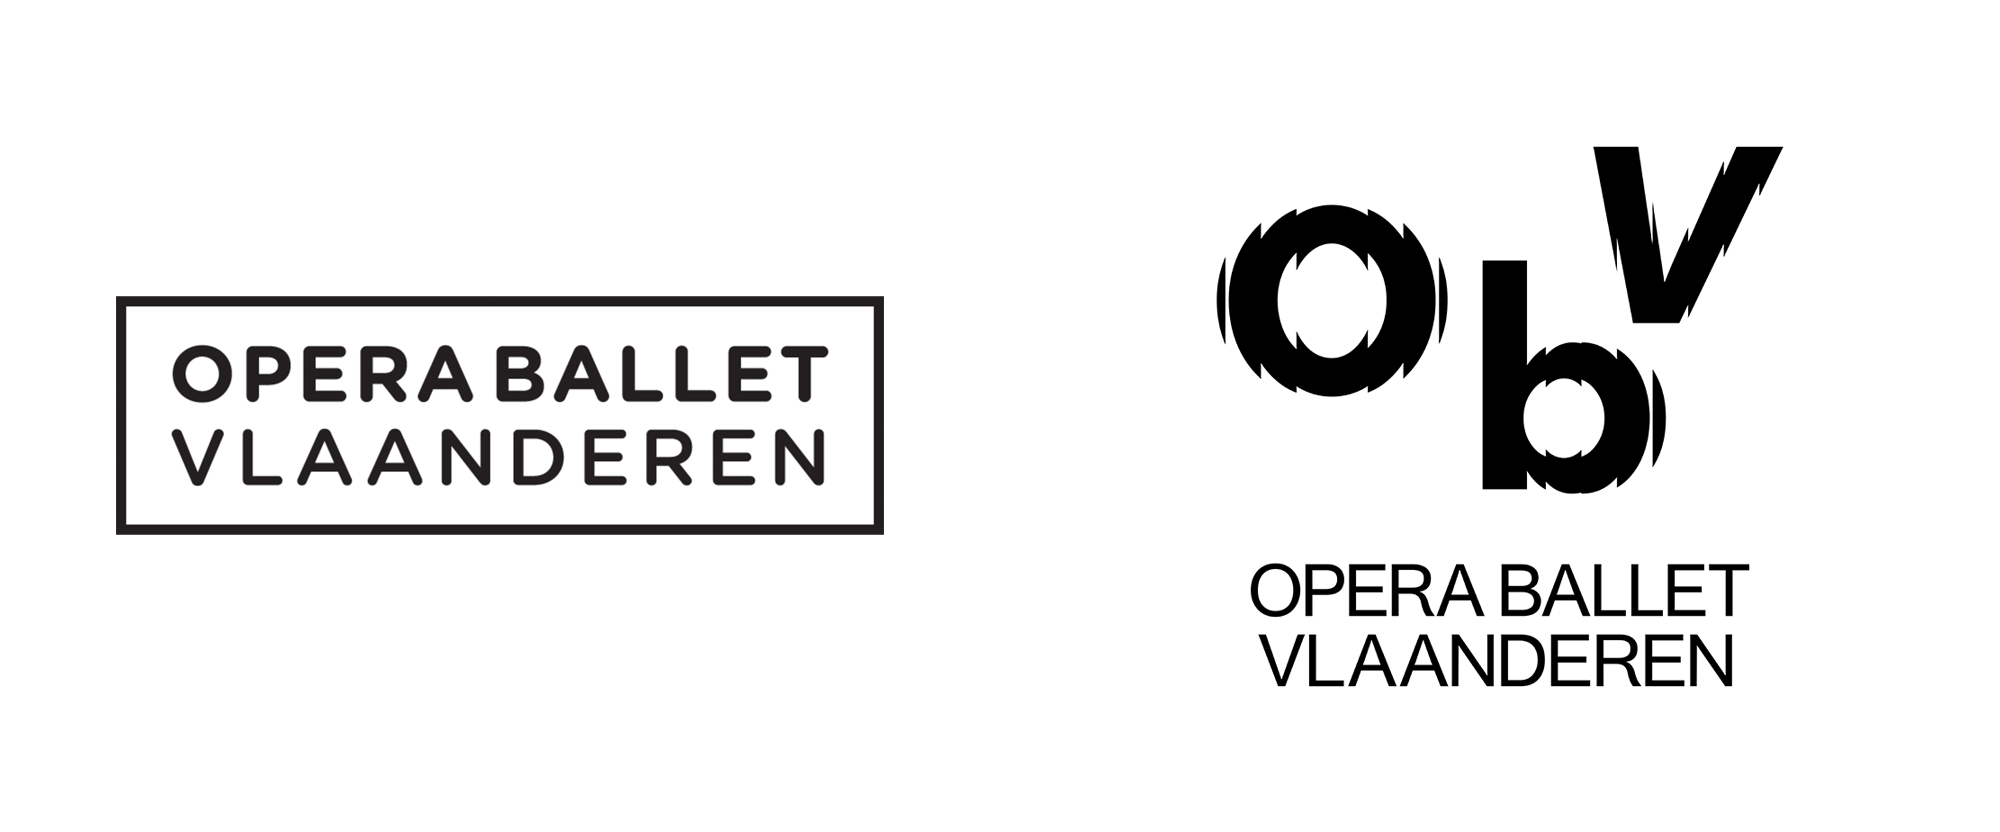 New Logo and Identity for Opera Ballet Vlaanderen by Pentagram